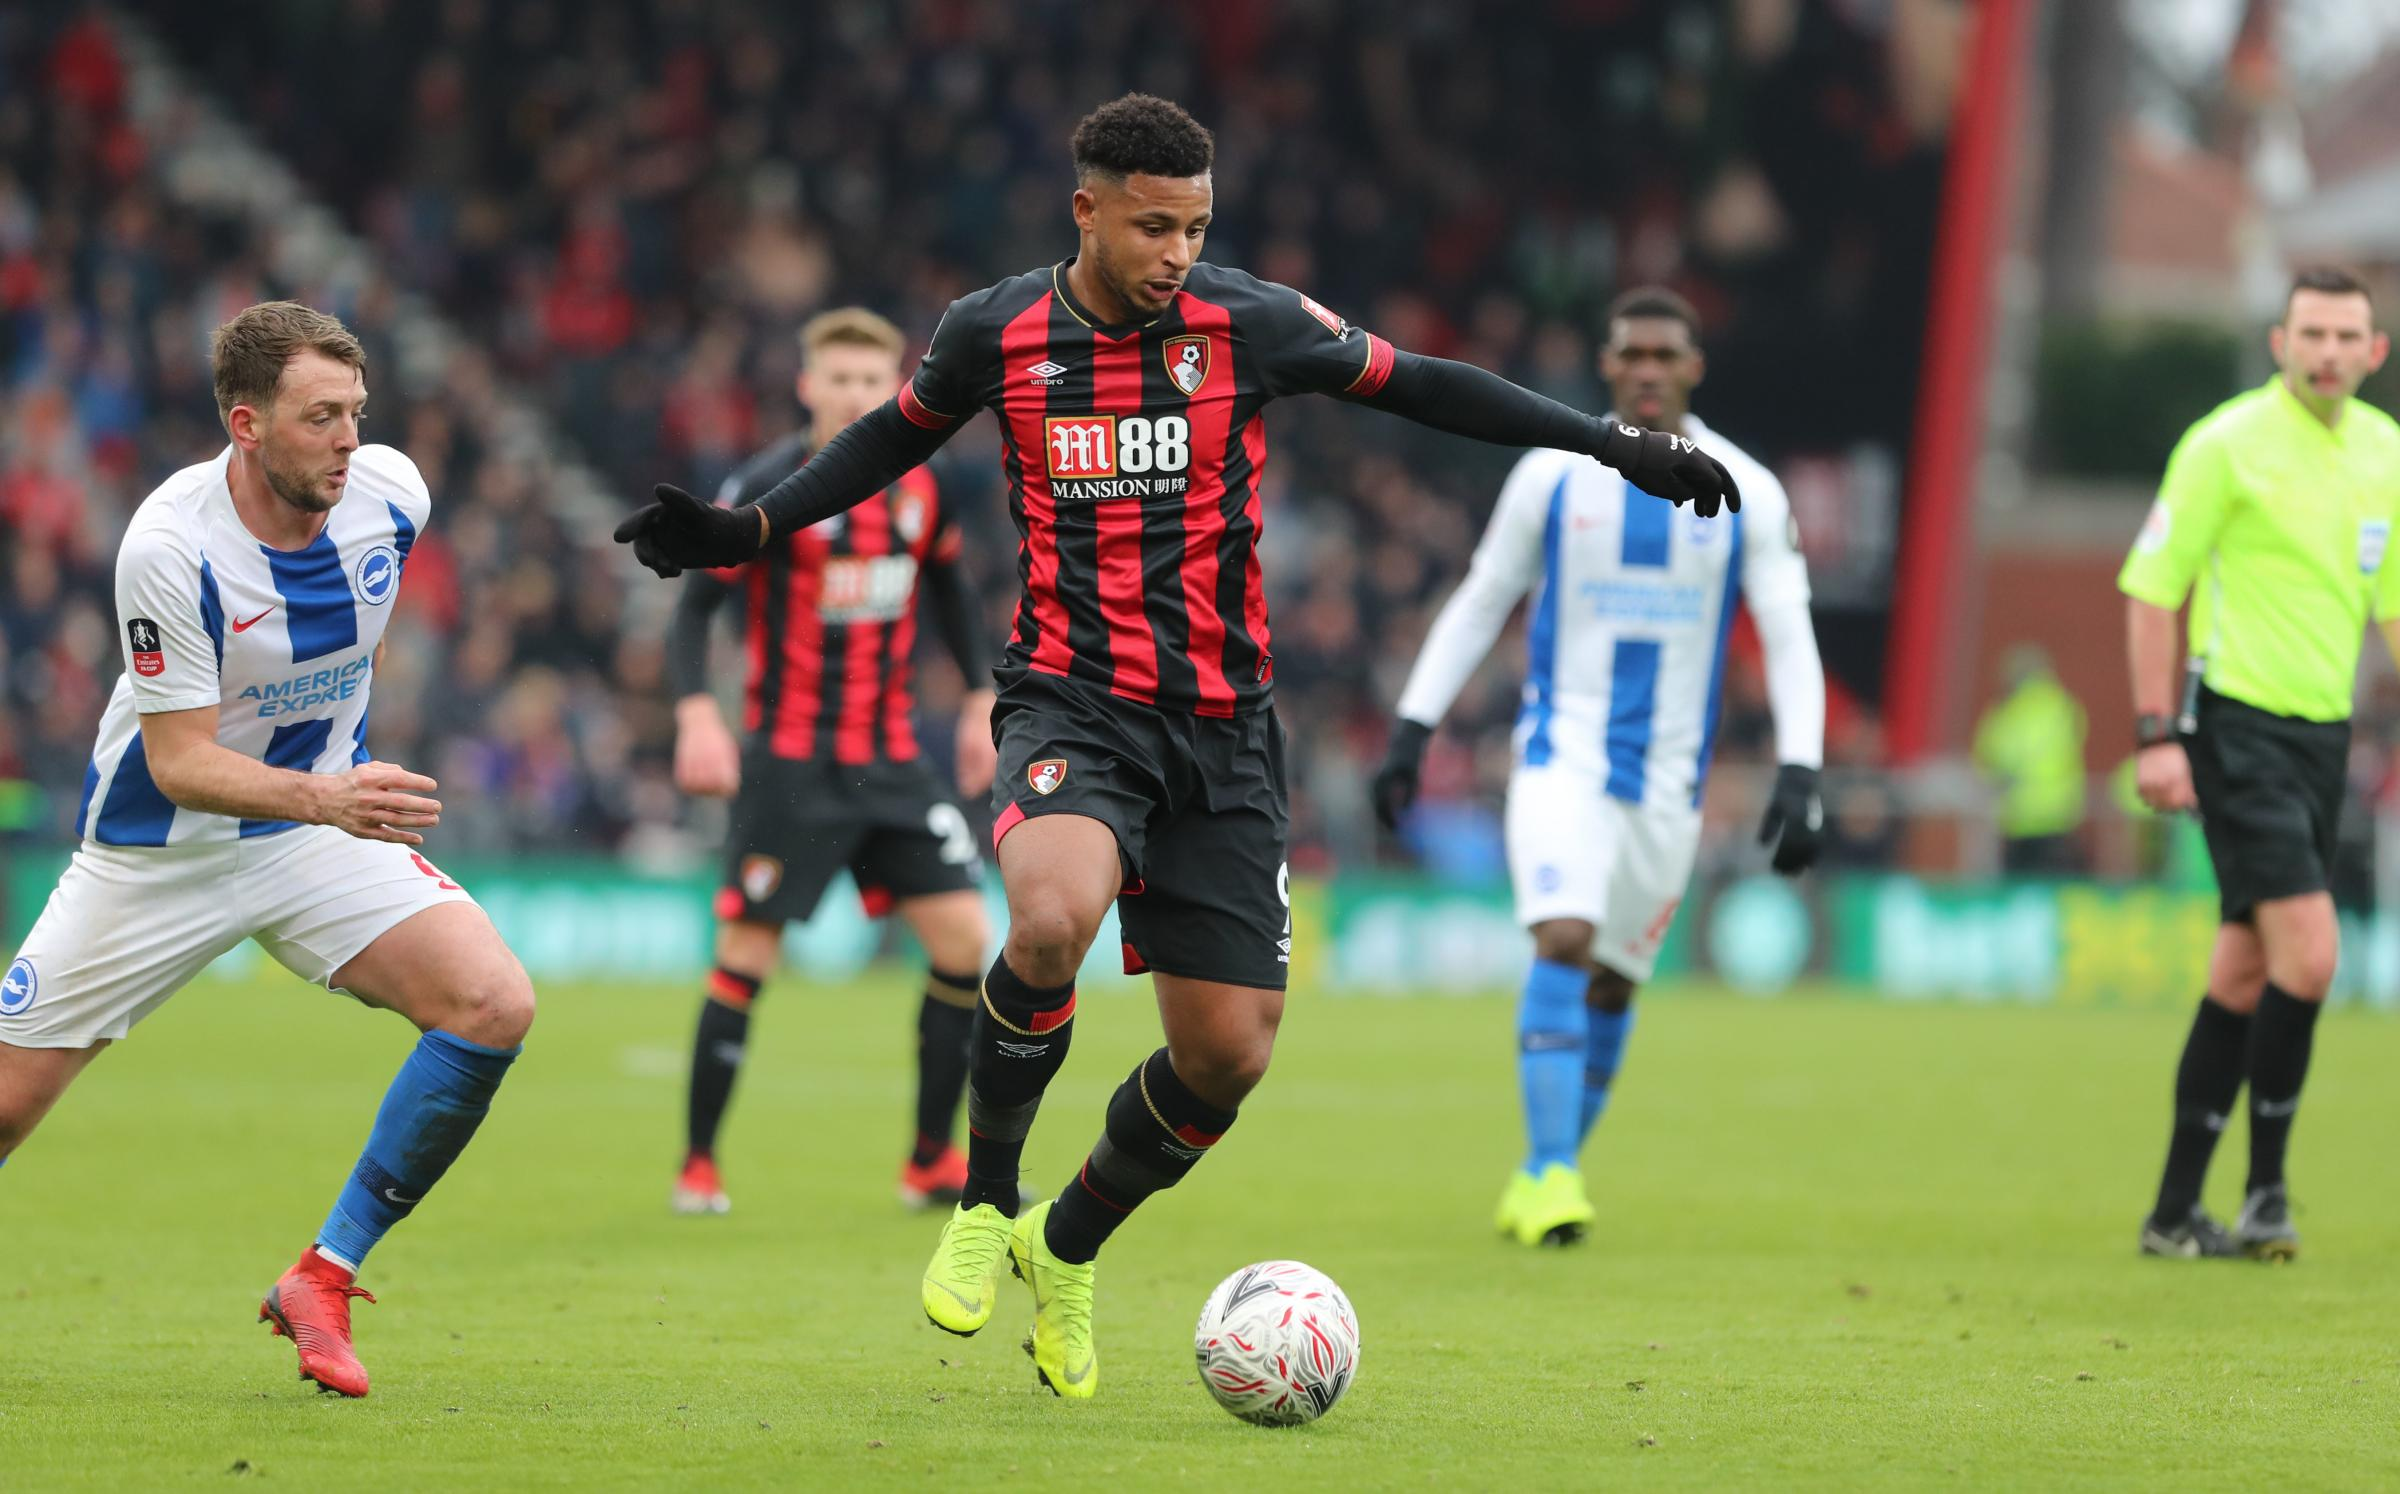 AFC Bournemouth agree a fee with Sheffield United for Lys Mousset